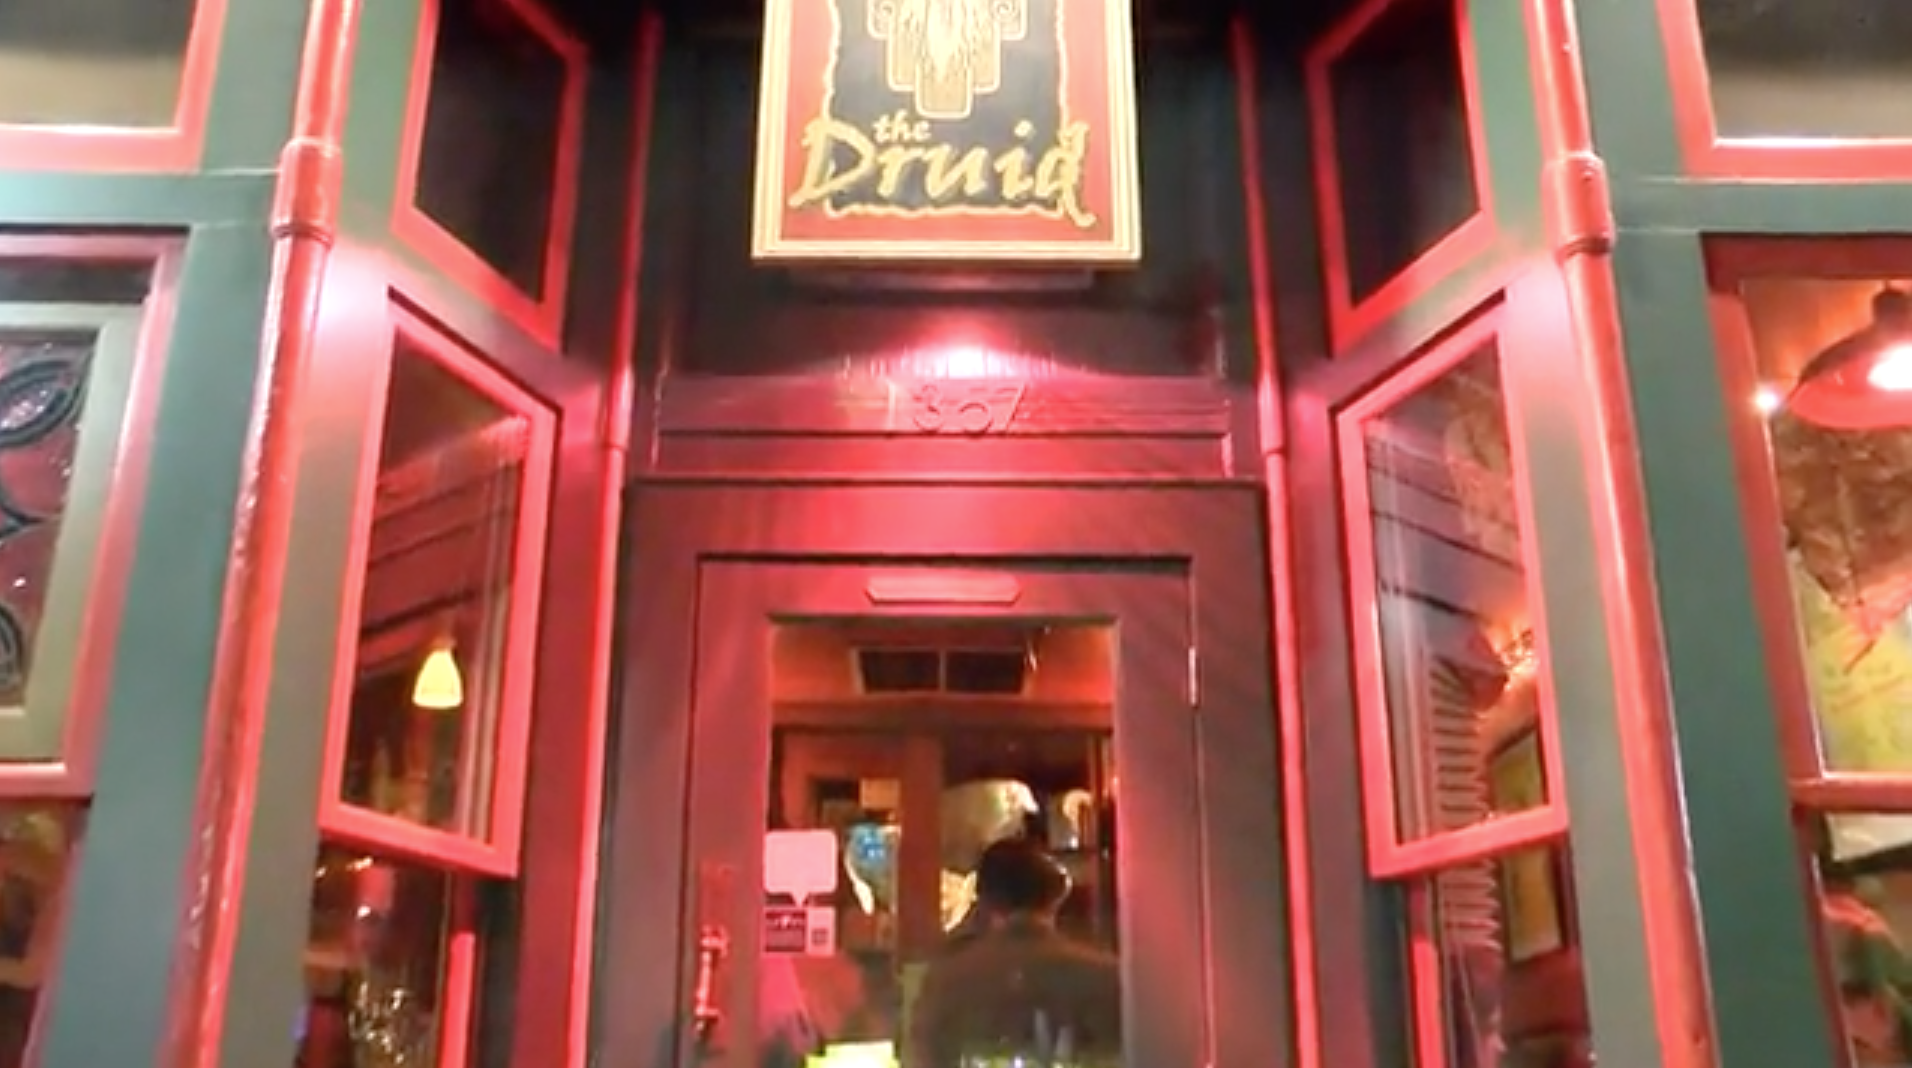 The Druid, Inman Square Click to view video